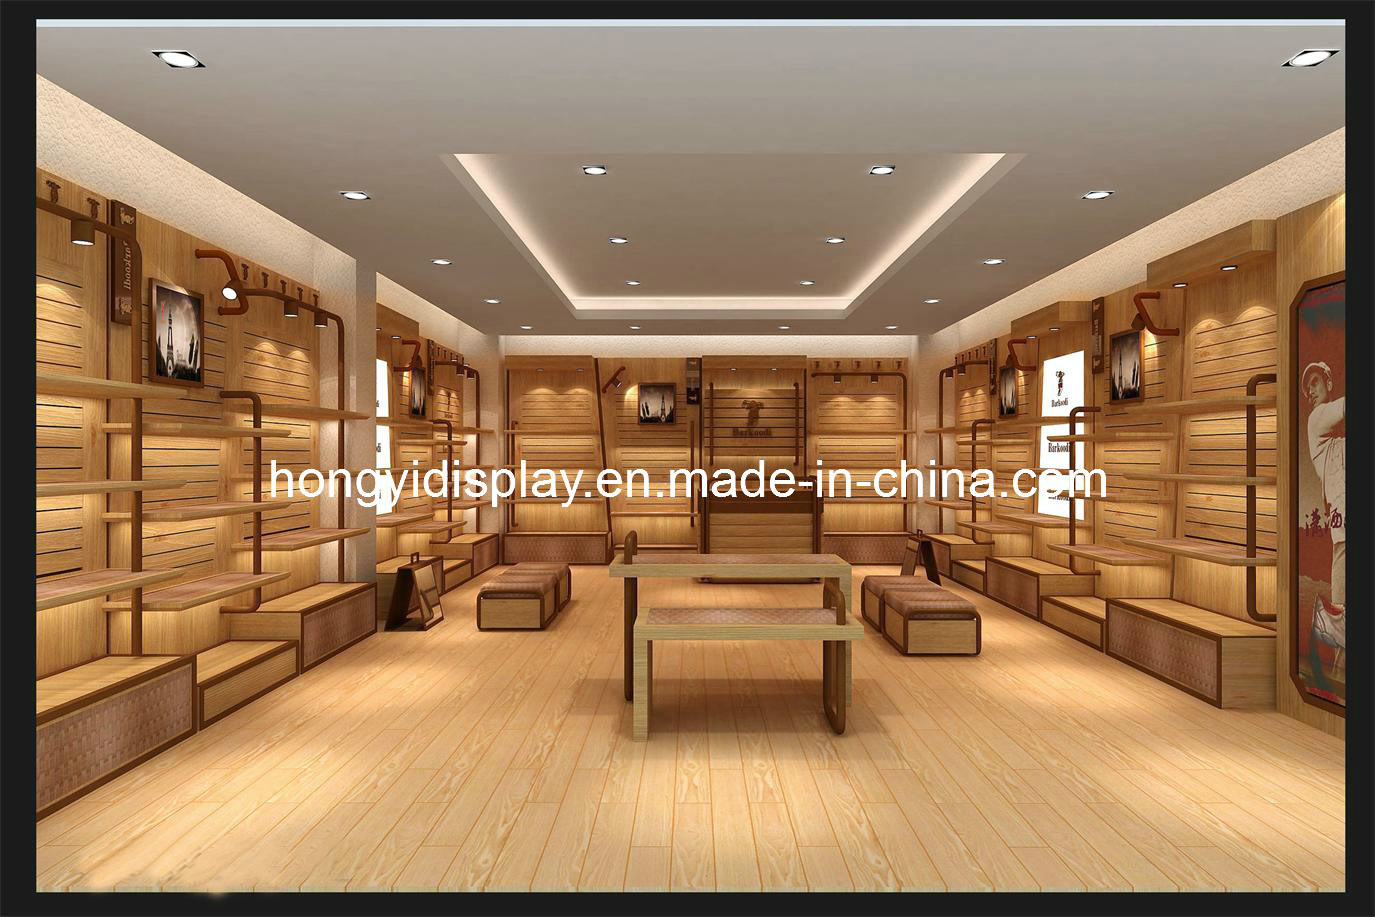 China men shoes shop decoration for store fixture china store display retail display for Interior design for shoes shop